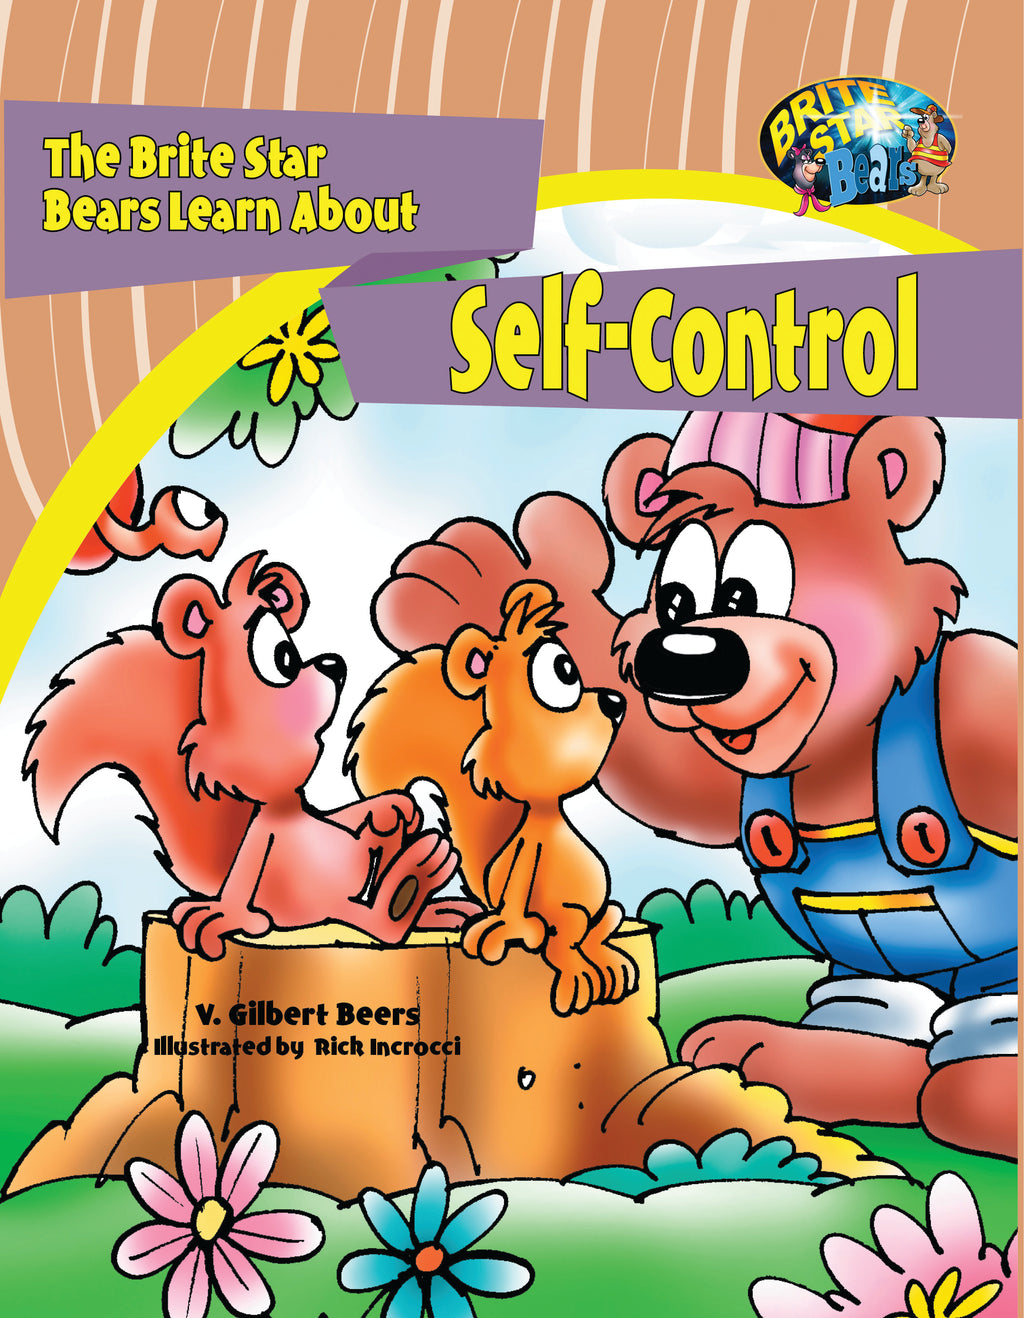 The Brite Star Bears Learn About Self Control